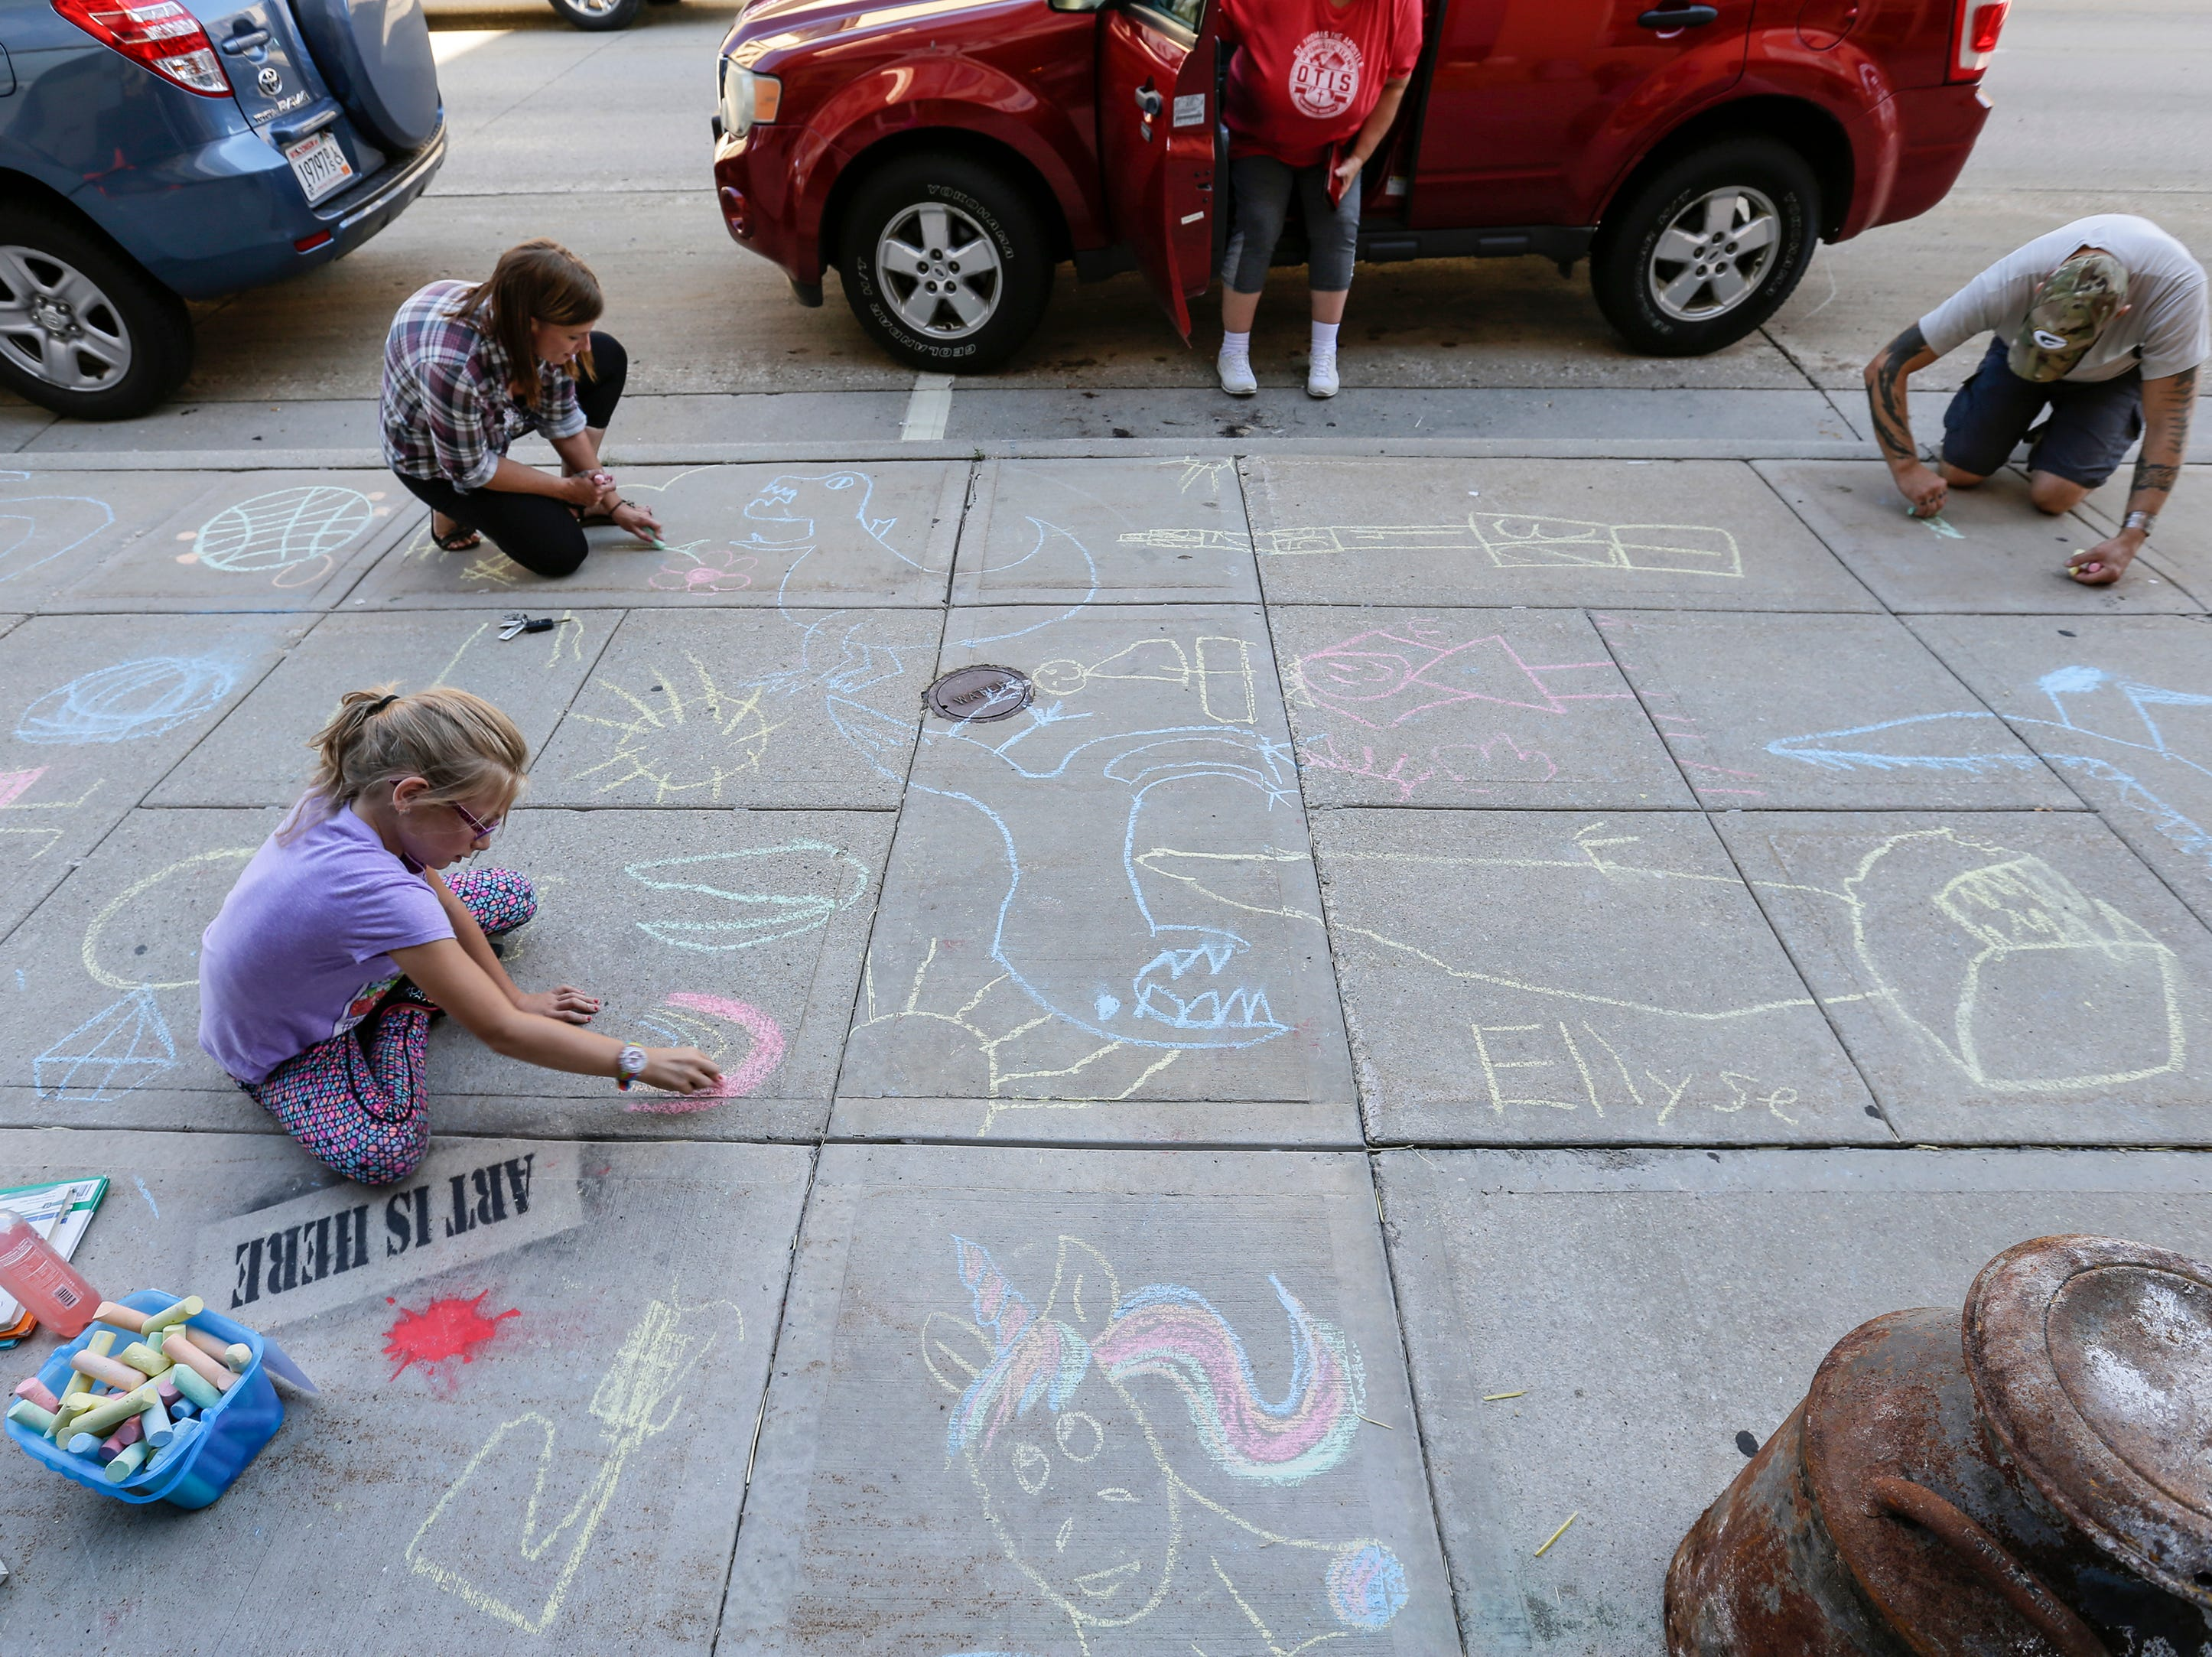 Makayla, 11, and her parents Becky and Eric Larsen color with sidewalk chalk outside Modern by Megan during the Art Slam Saturday, September 15, 2018, in Manitowoc, Wis. Josh Clark/USA TODAY NETWORK-Wisconsin